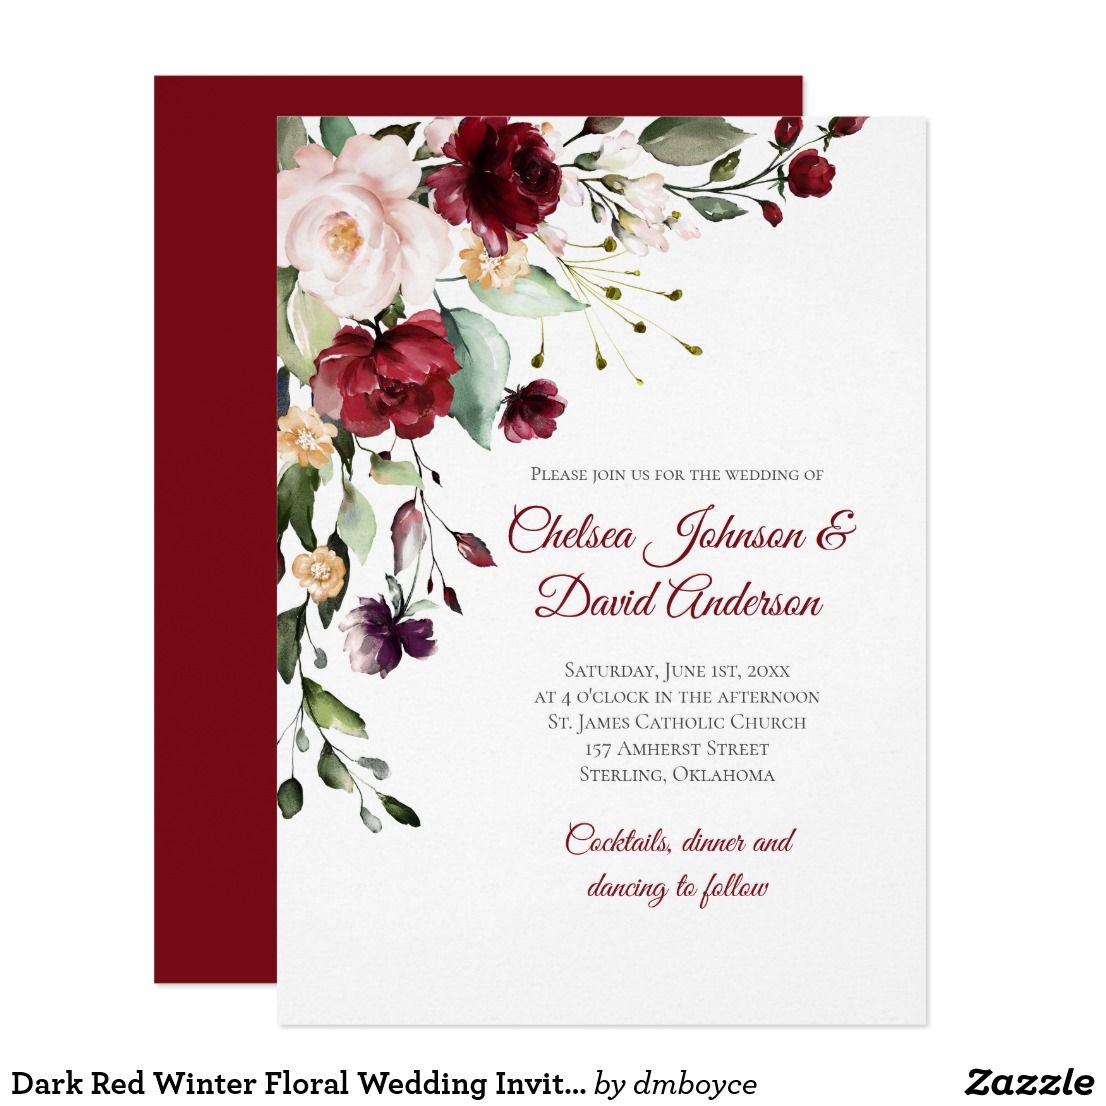 Dark Red Winter Floral Wedding Invitation Zazzle Com Floral